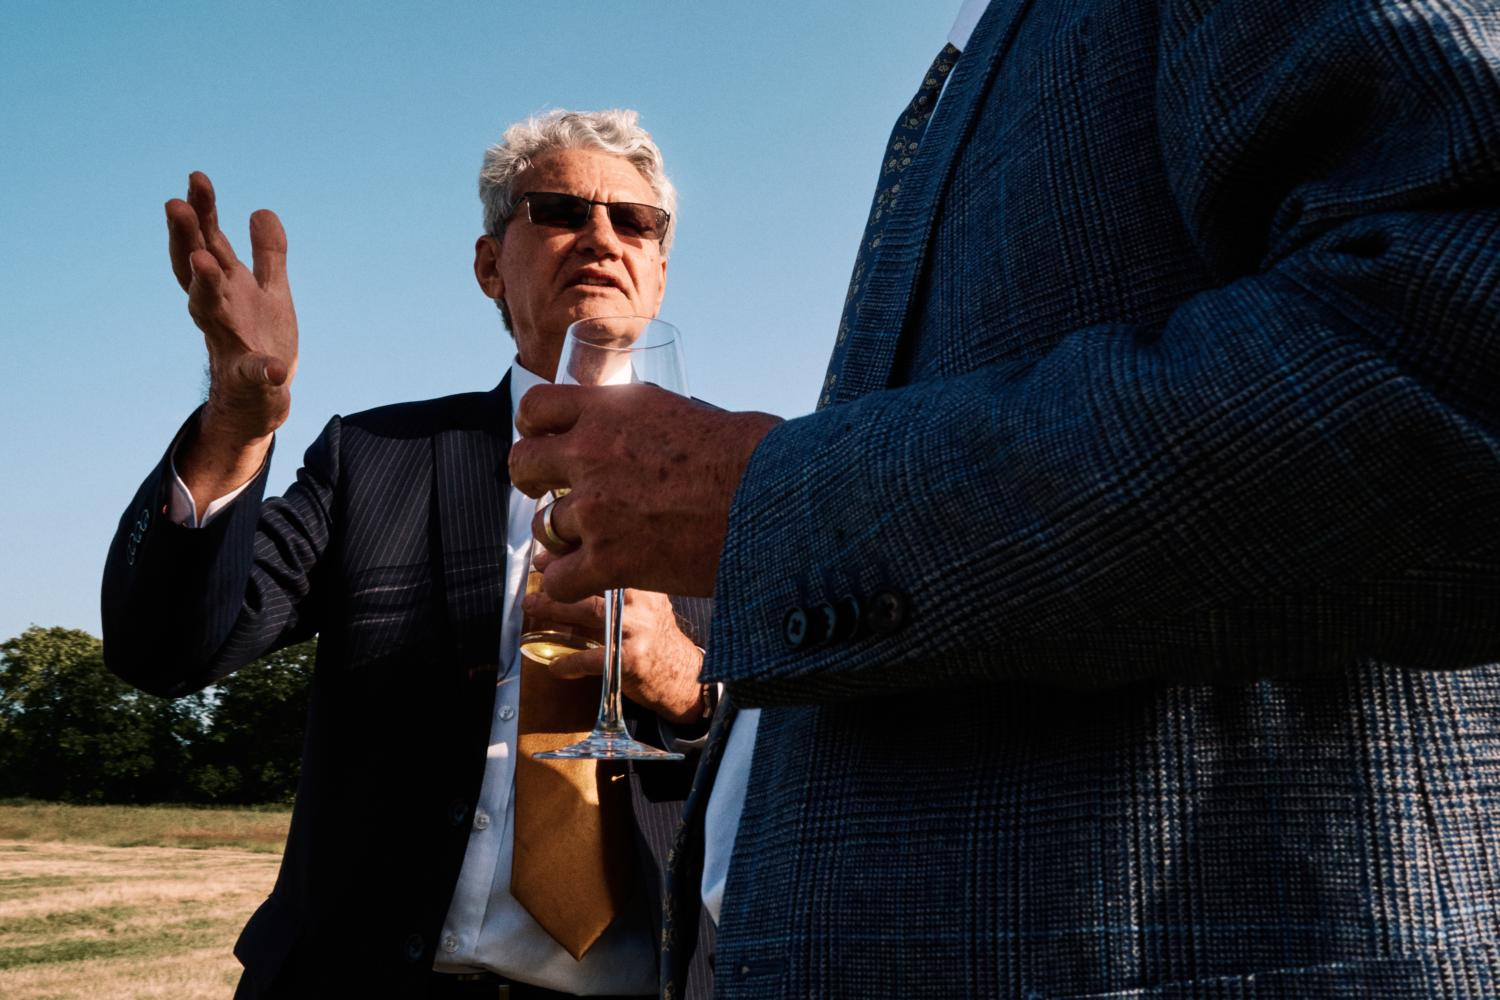 A man in sunglasses gestures to a friend with his hand